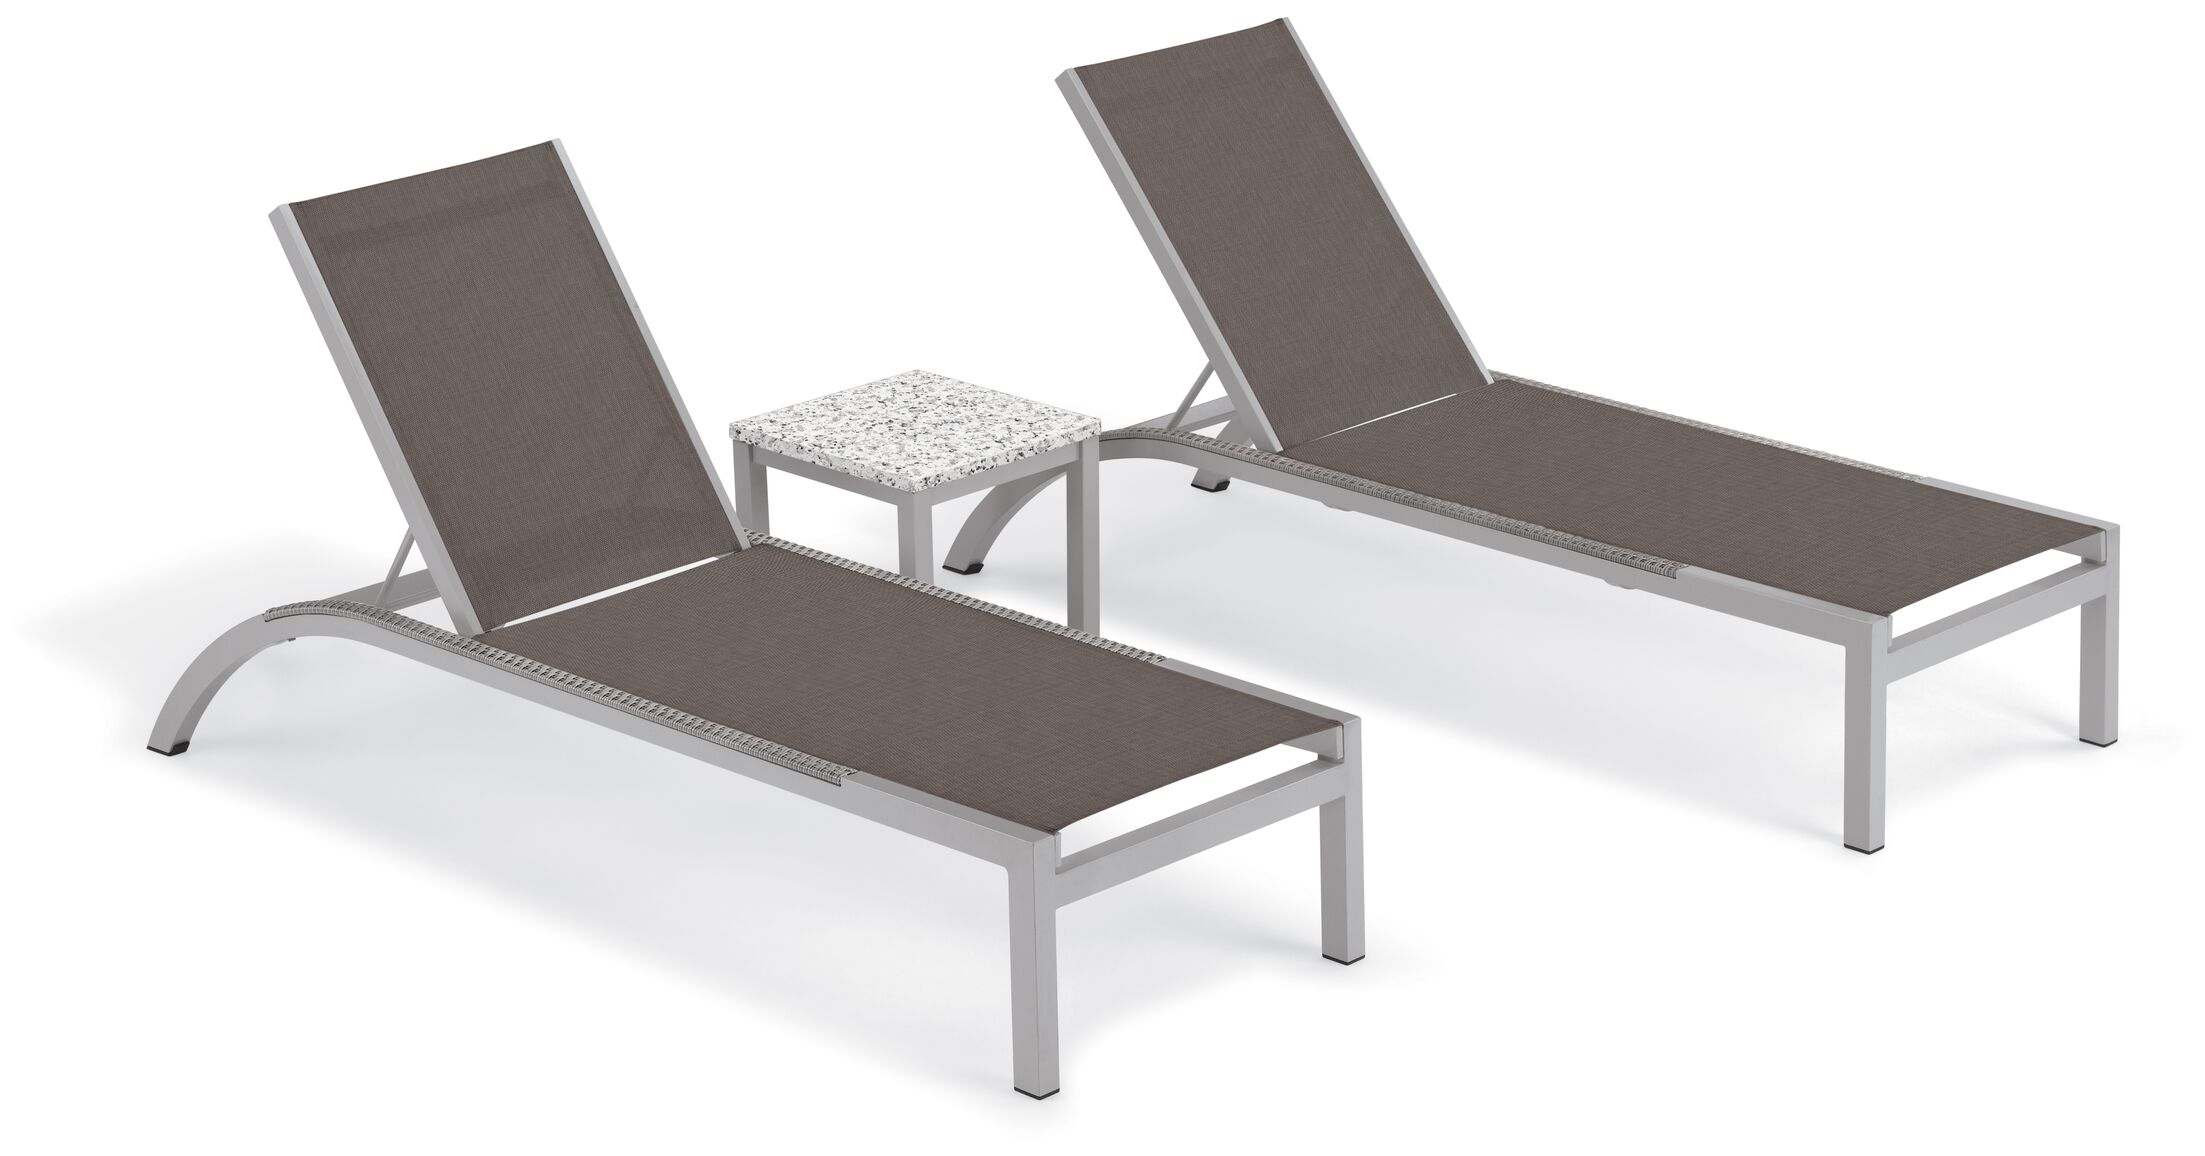 Saint-Pierre Reclining Chaise Lounge with End Table Color: Cocoa, Tabletop Color: Ash